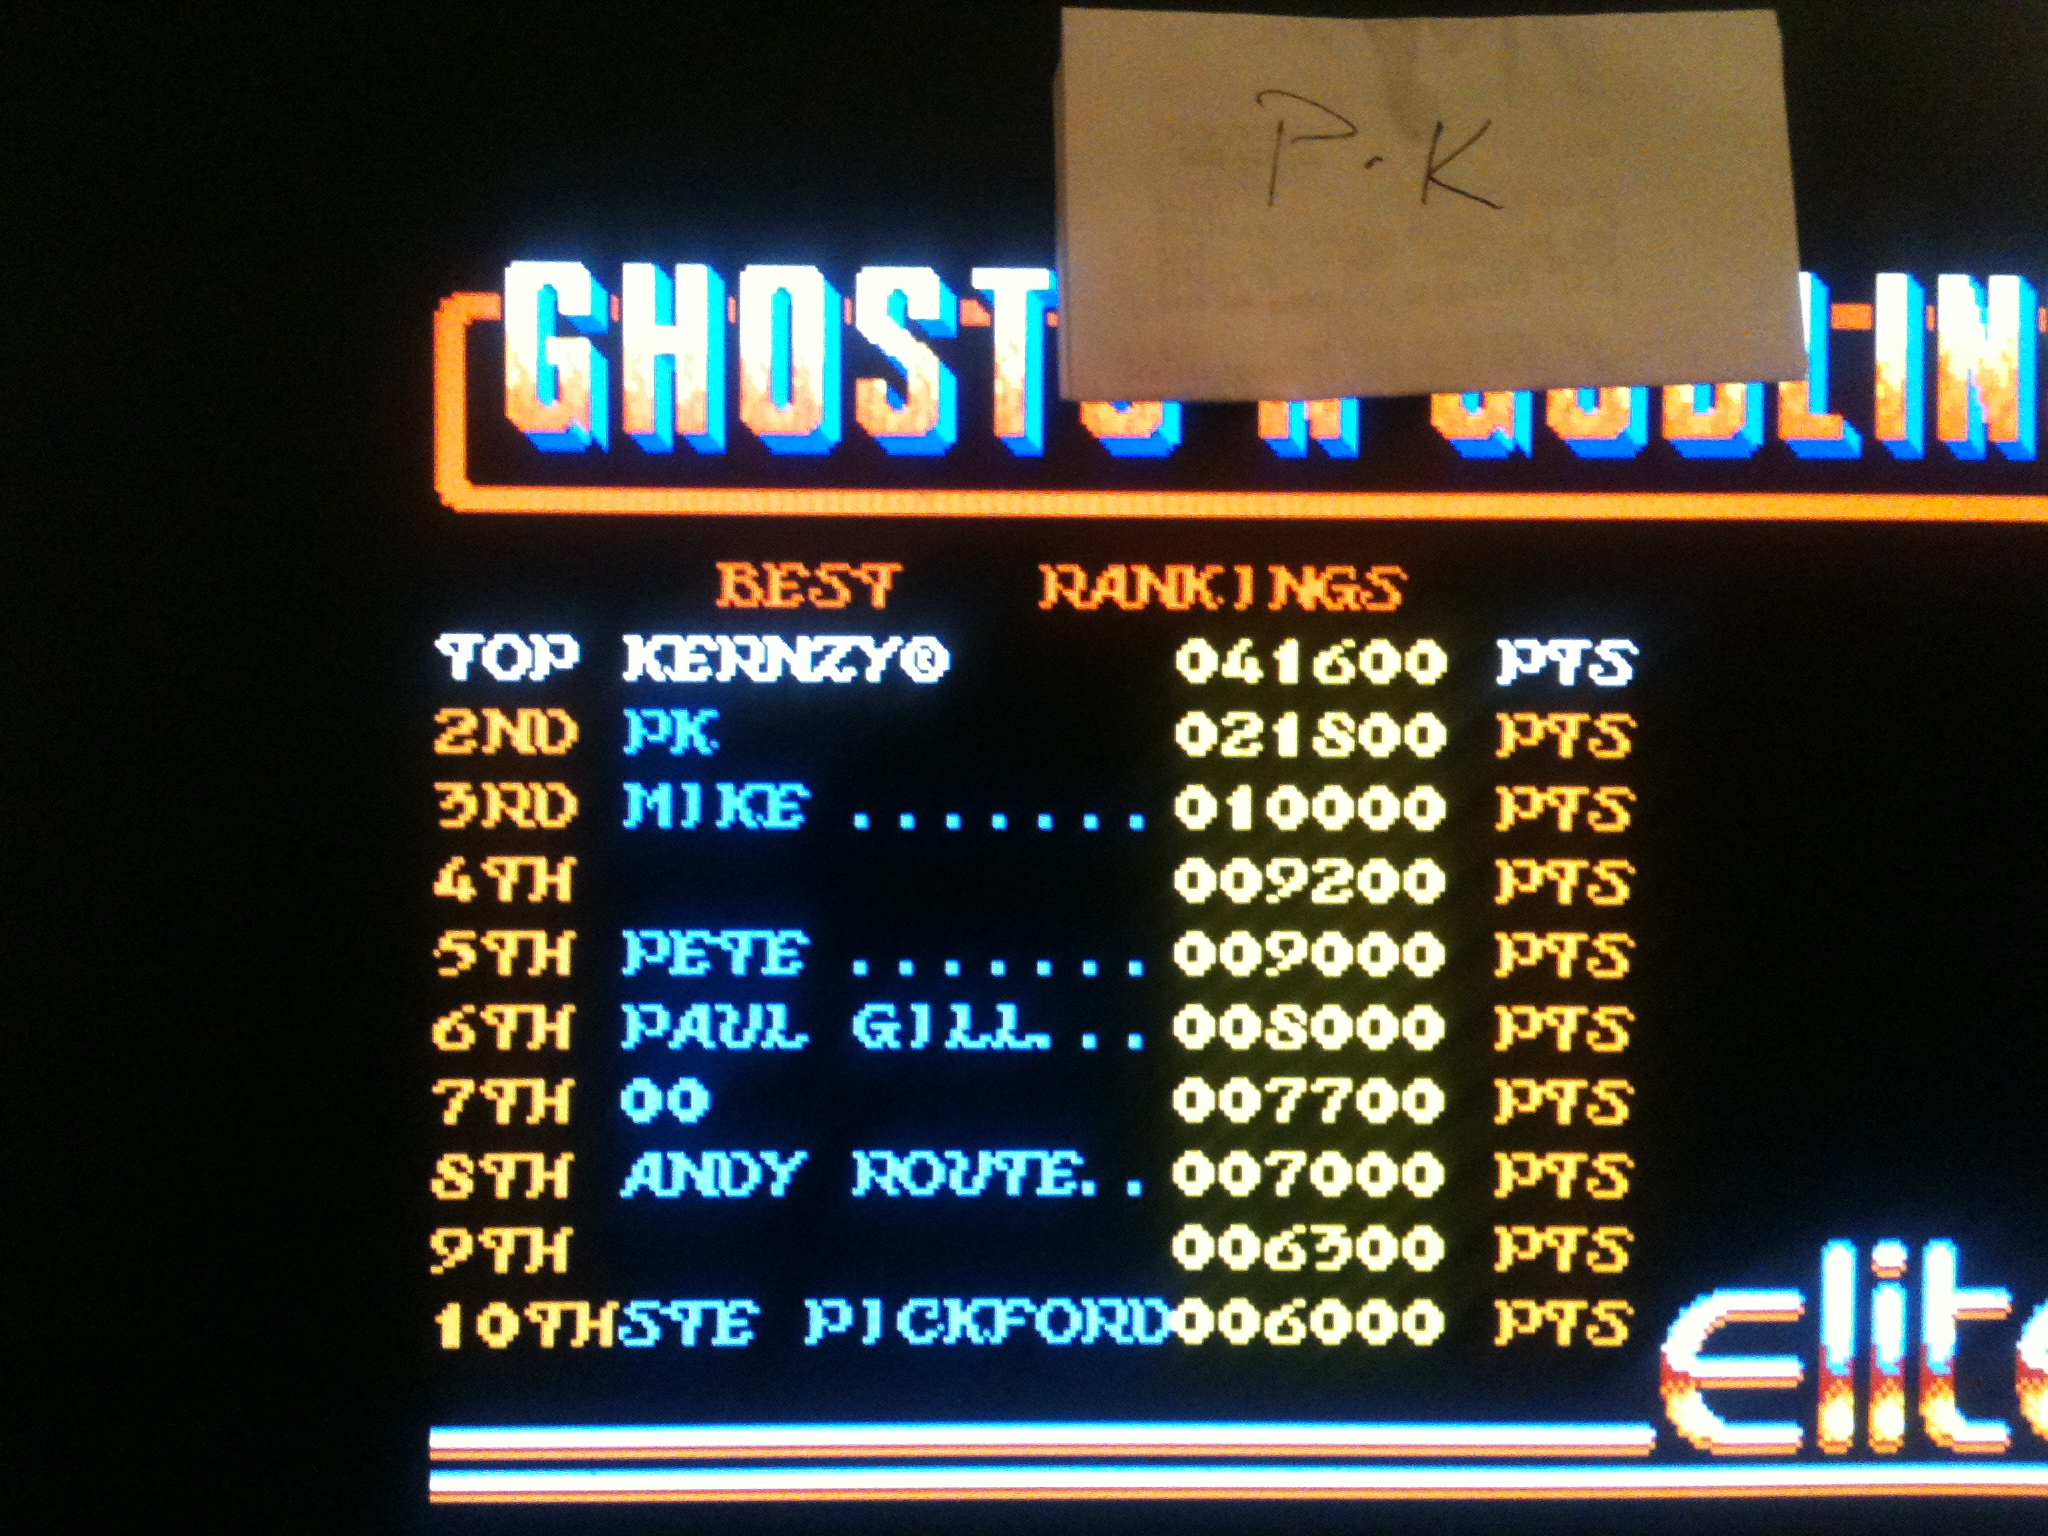 kernzy: Ghosts N Goblins (Atari ST Emulated) 41,600 points on 2015-02-05 11:19:06